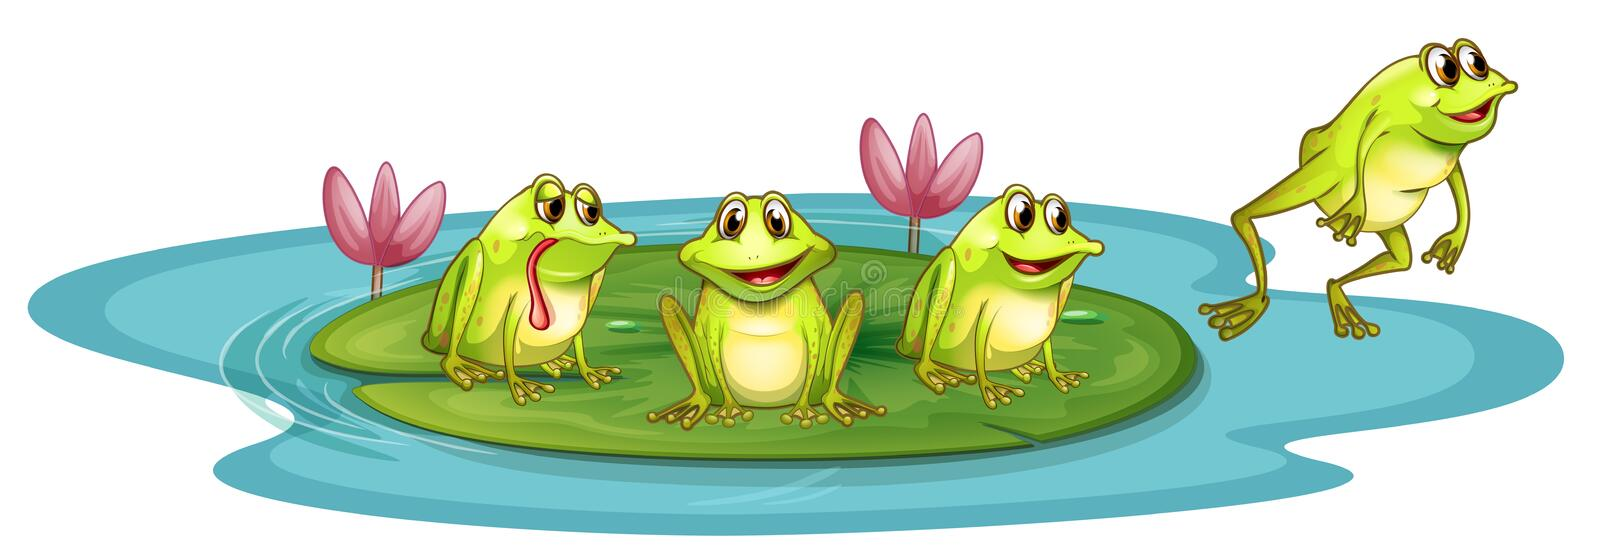 Frogs in the pond. Illustration of the frogs in the pond on a white background royalty free illustration